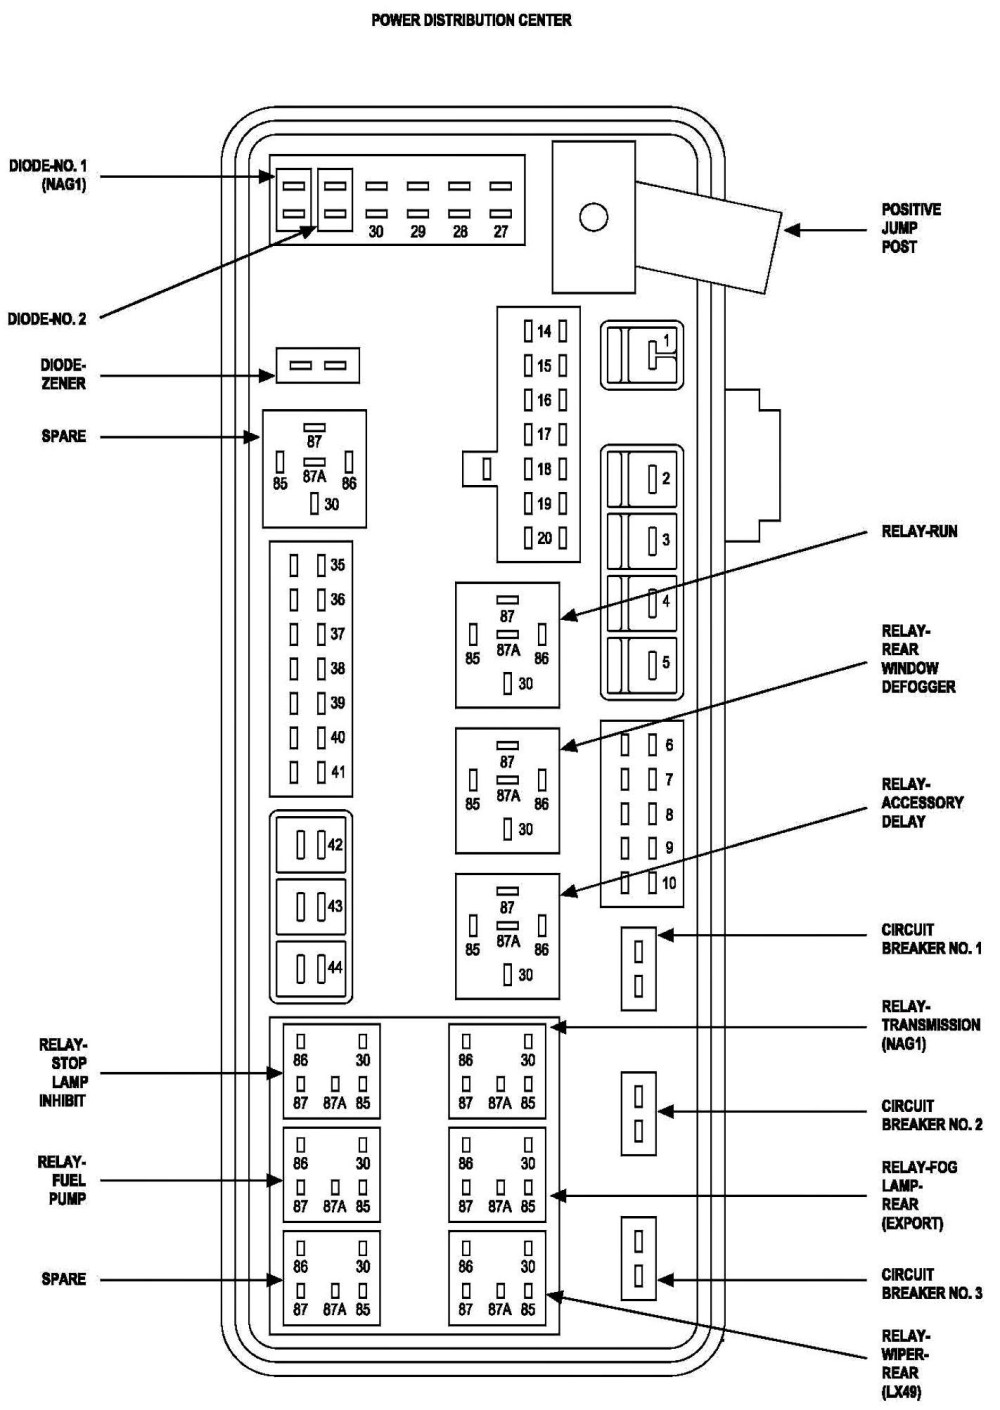 medium resolution of chrysler fuse box diagram wiring diagram expert chrysler sebring 2007 fuse diagram chrysler fuse diagram